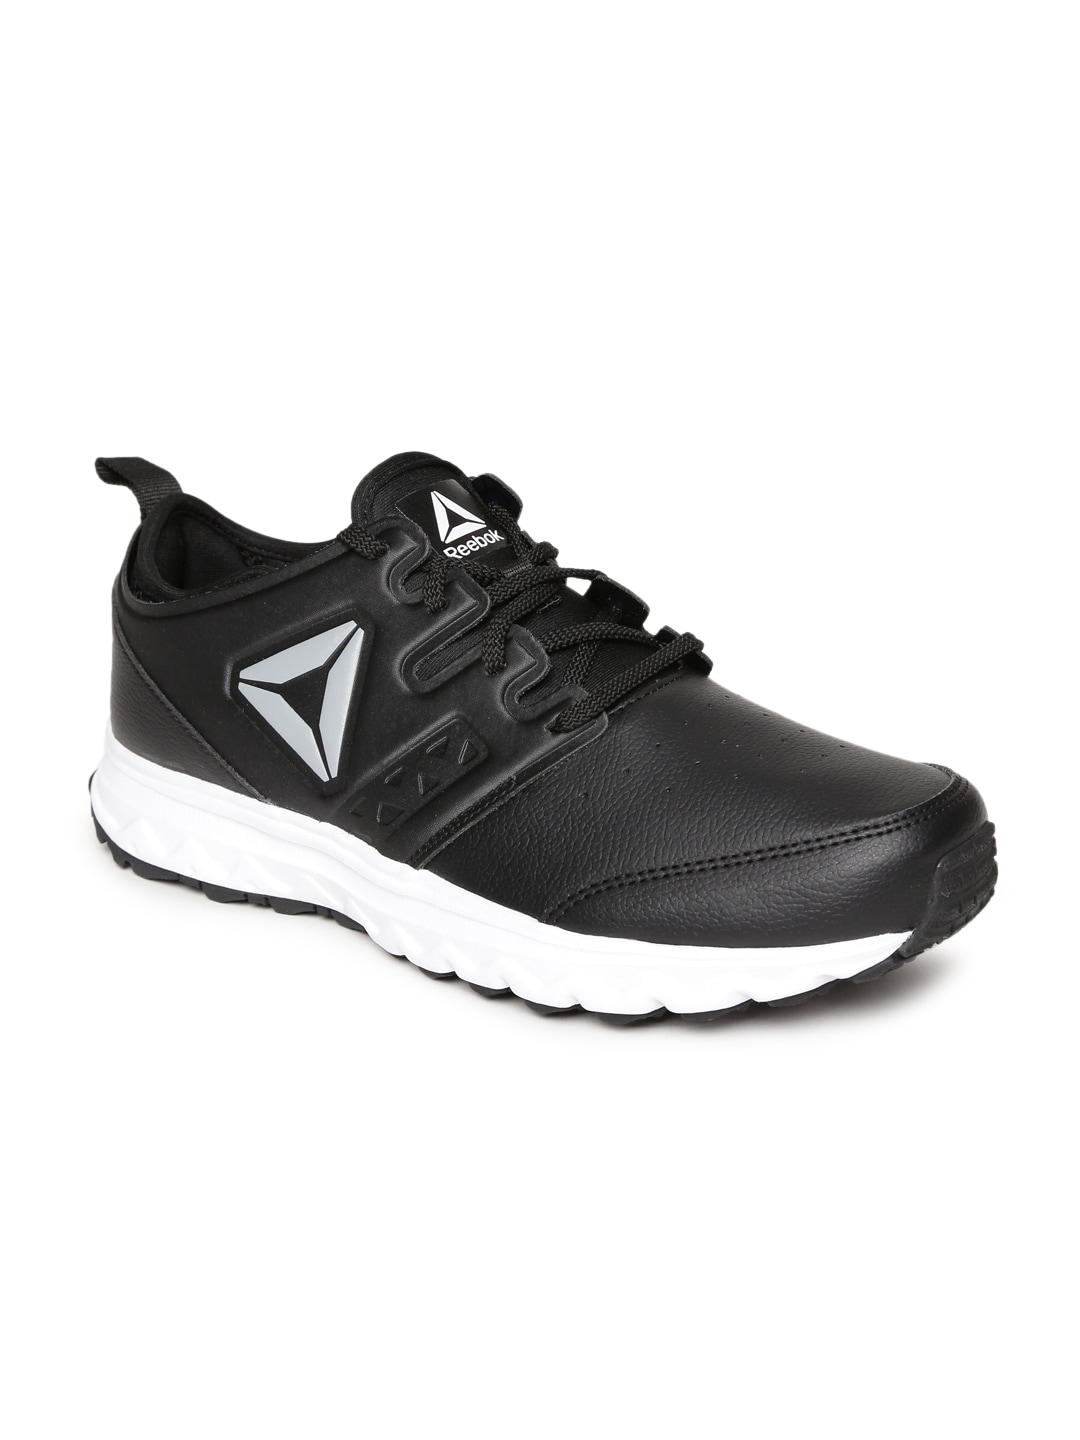 4a231e9e6bfc Buy Reebok Men Navy Voyager Xtreme Running Shoes - Sports Shoes for Men  3011223